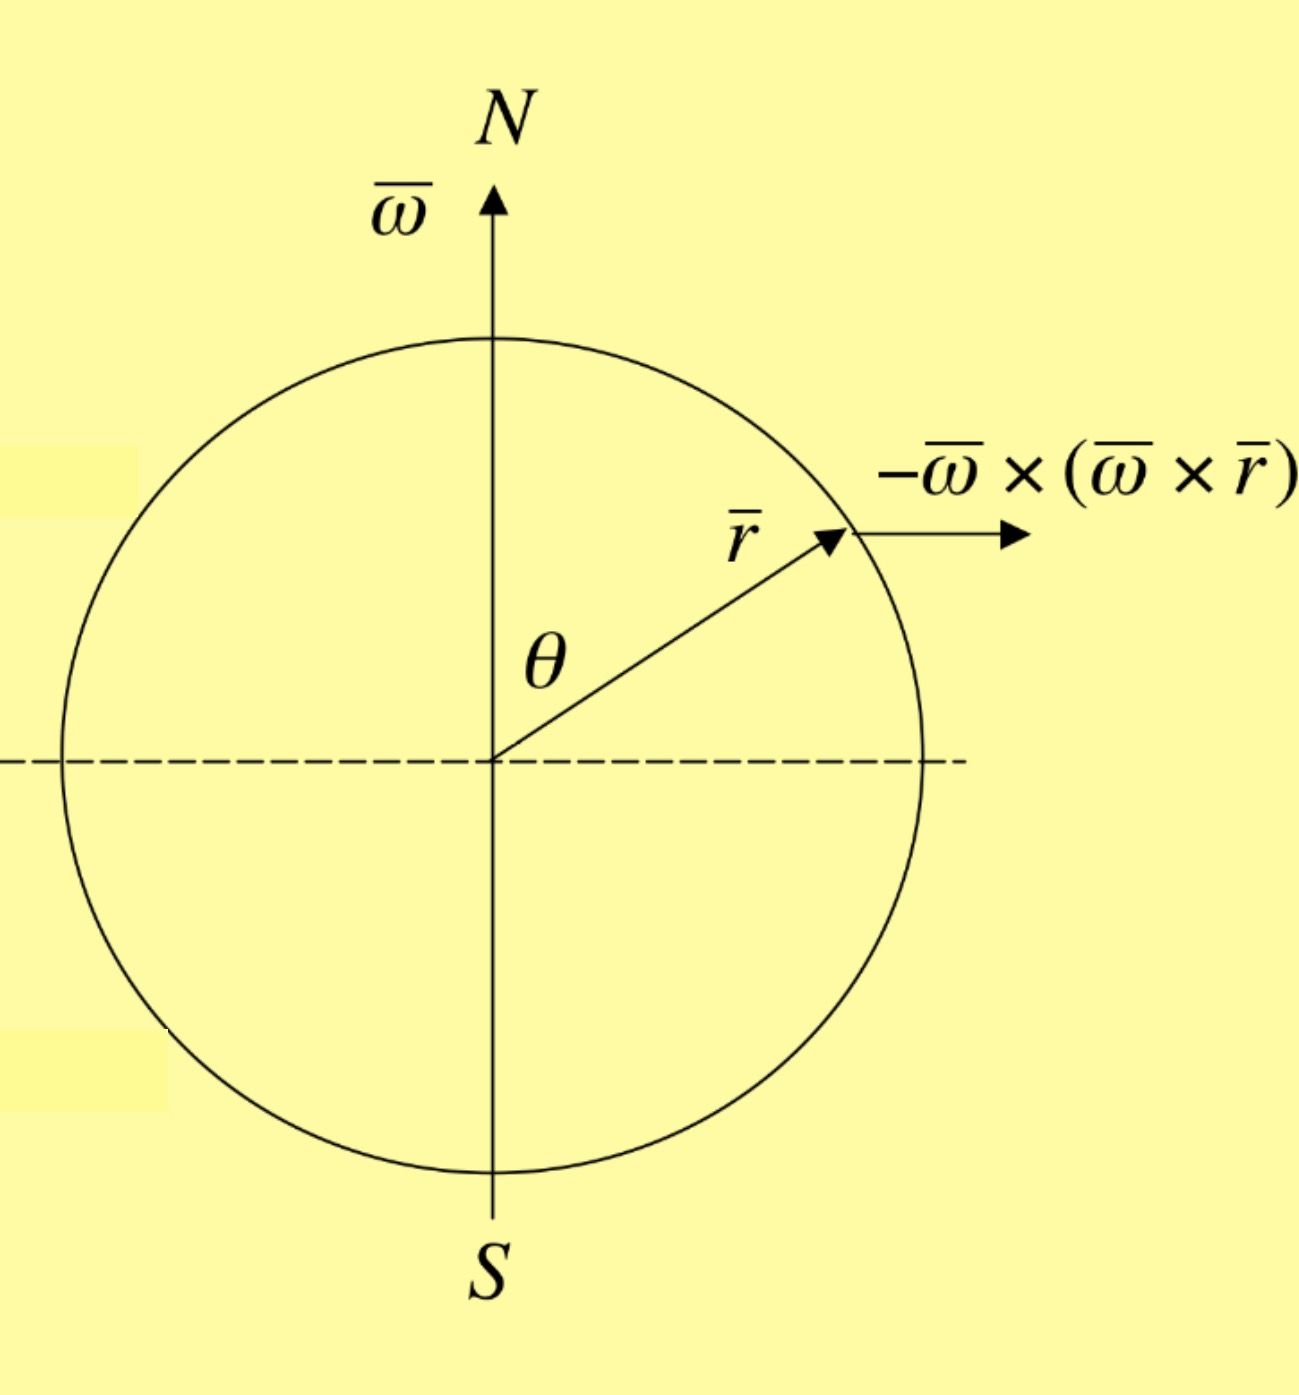 hight resolution of the direction of the centrifugal force is away from the axis of rotation as shown